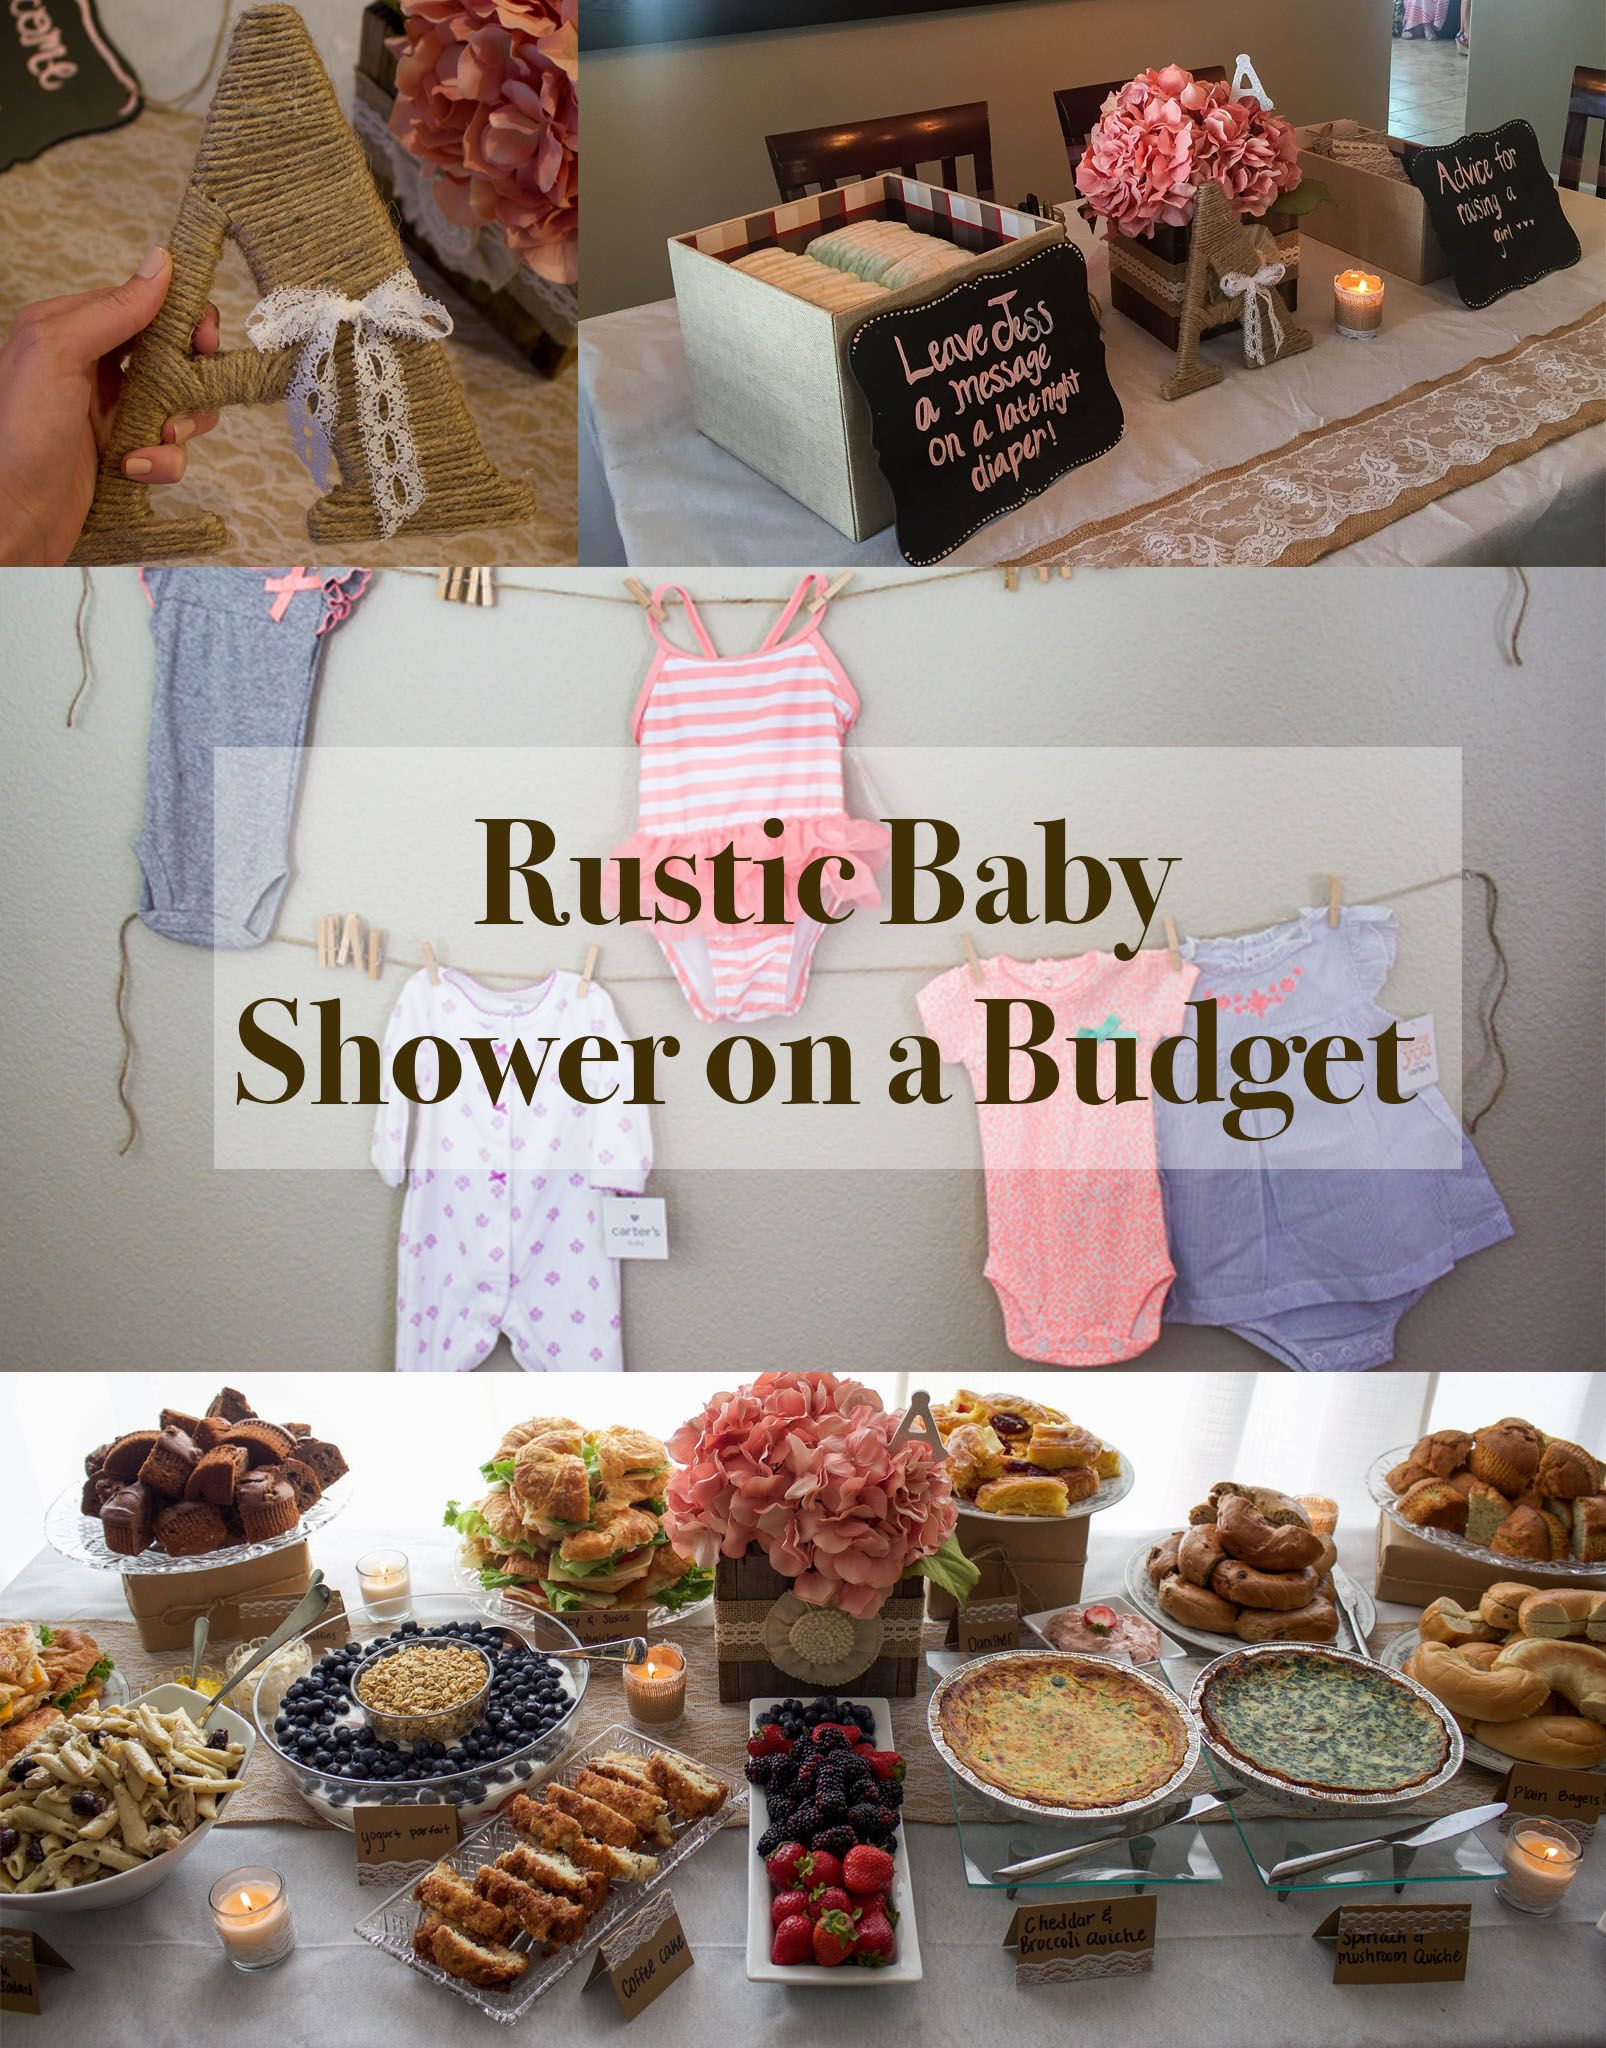 Elegant Love These Food Ideas. How To Throw A Rustic Themed Baby Shower Brunch On A  Budget! Click Picture For Tips!